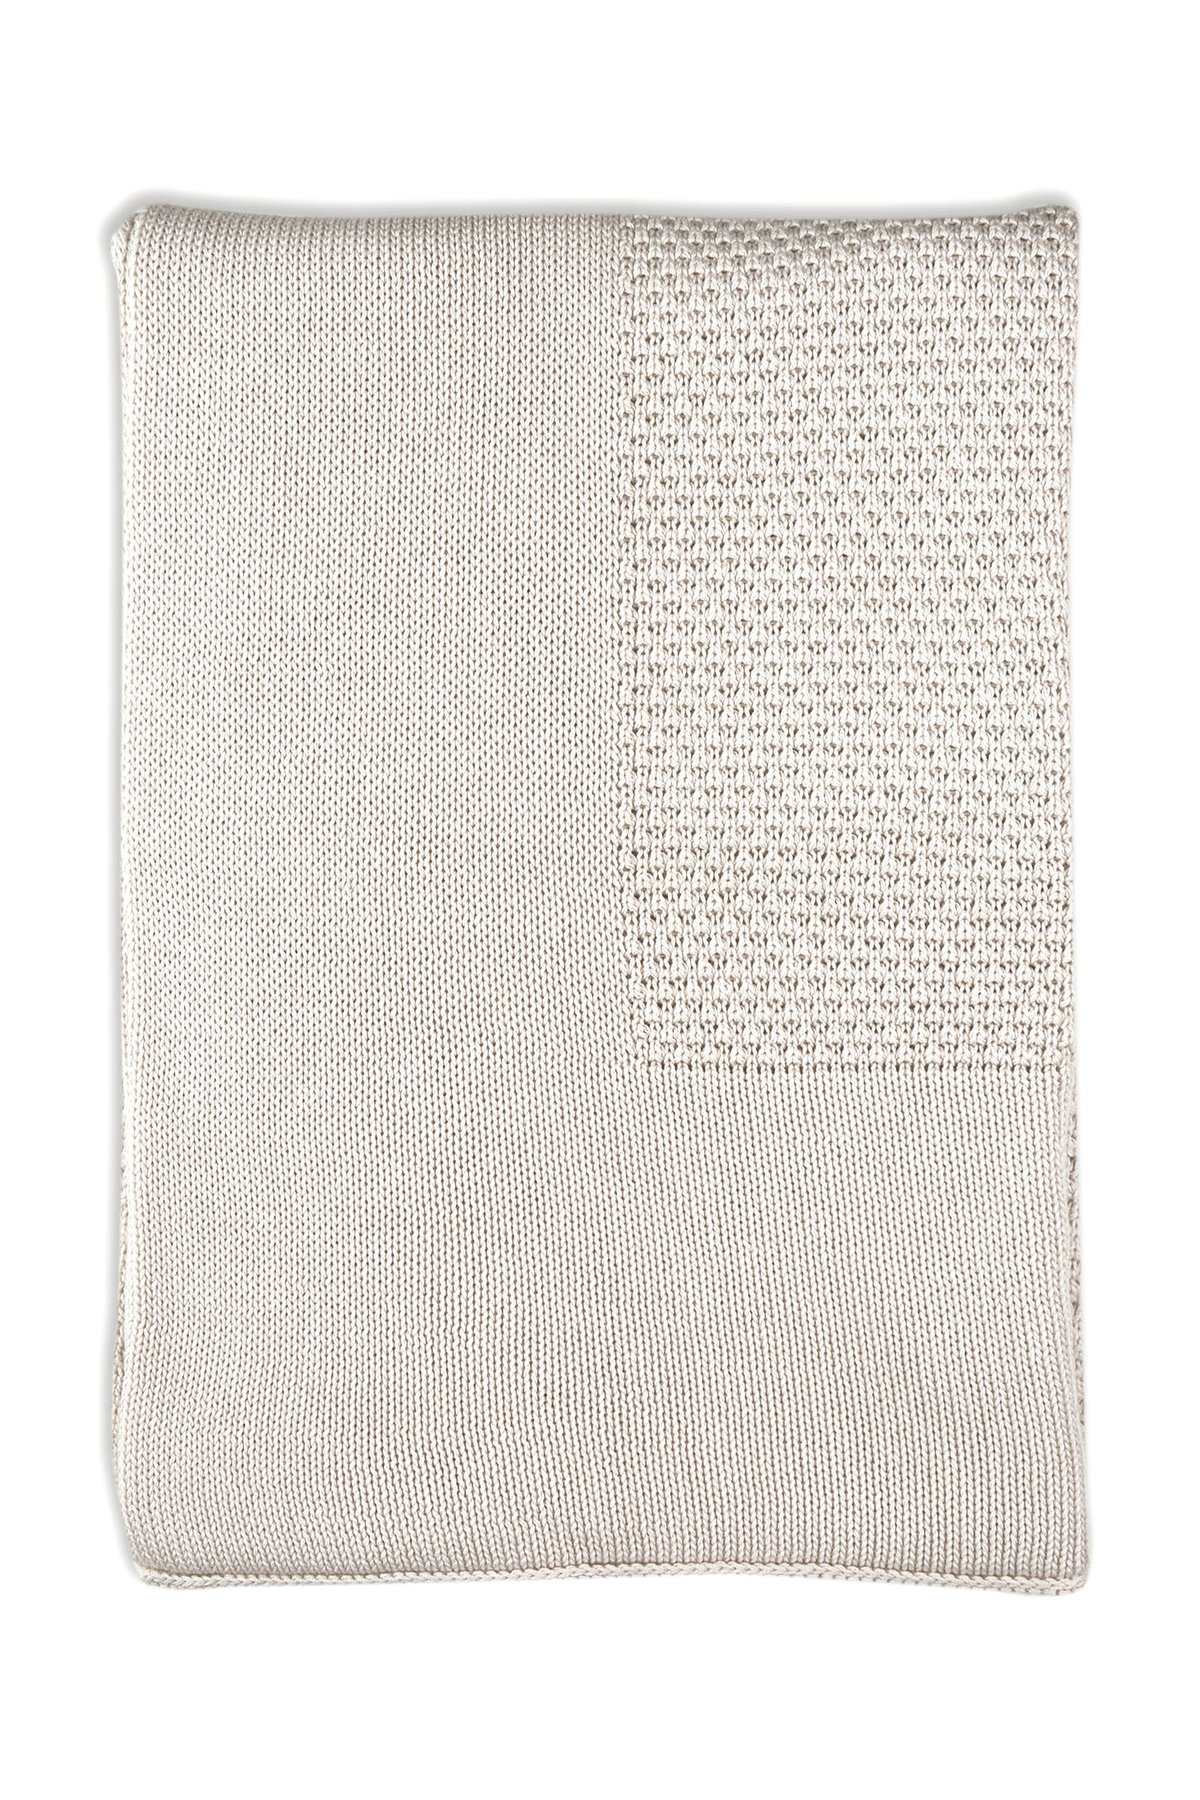 Little Bamboo Textured Blanket - Oatmeal(Silver)